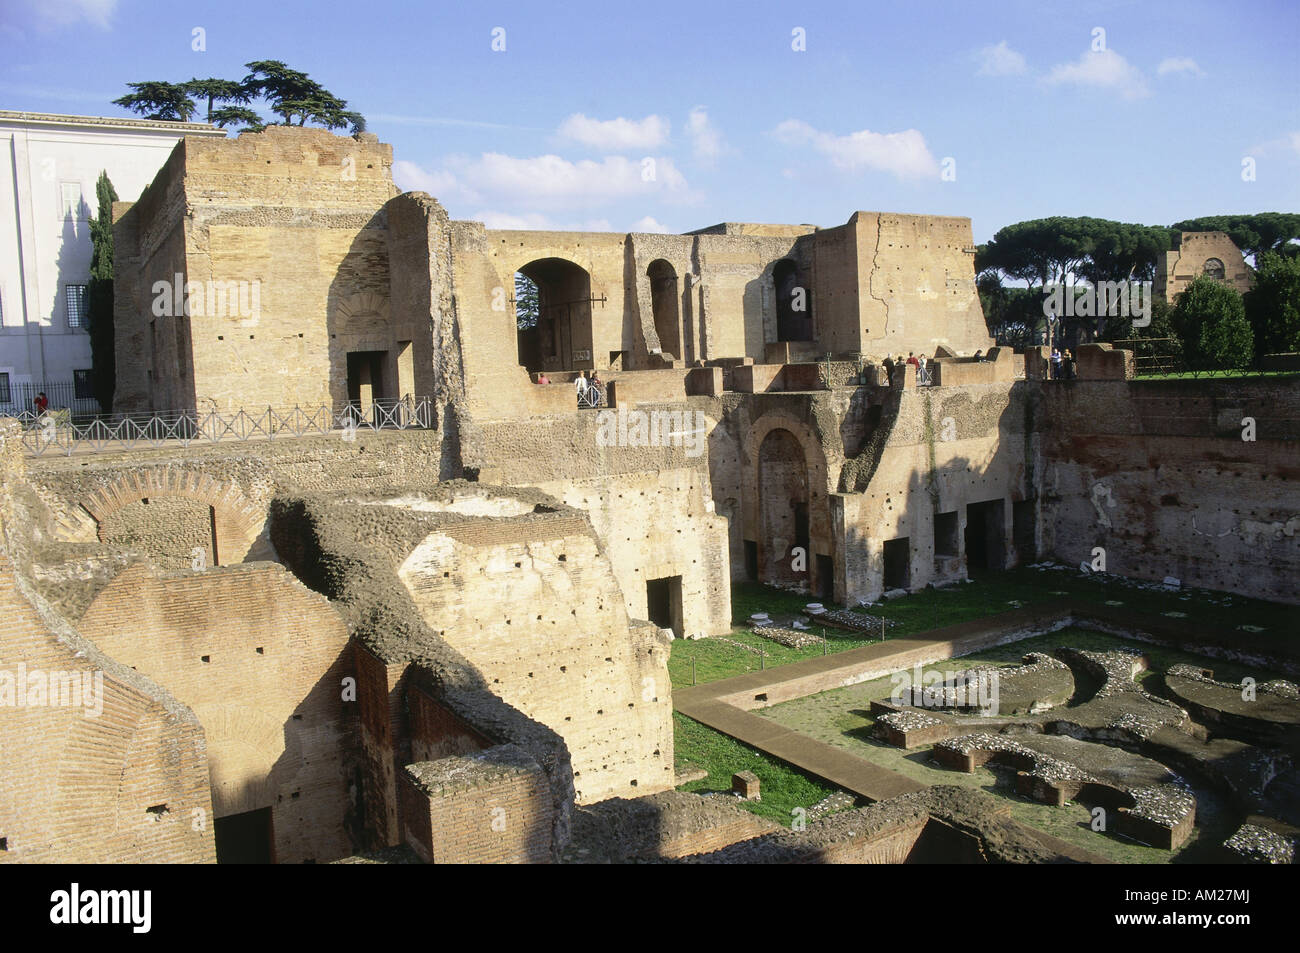 Geographytravel italy rome palatine hill domus augustana casa geographytravel italy rome palatine hill domus augustana casa di augusto built 1st century europe architecture augus publicscrutiny Image collections